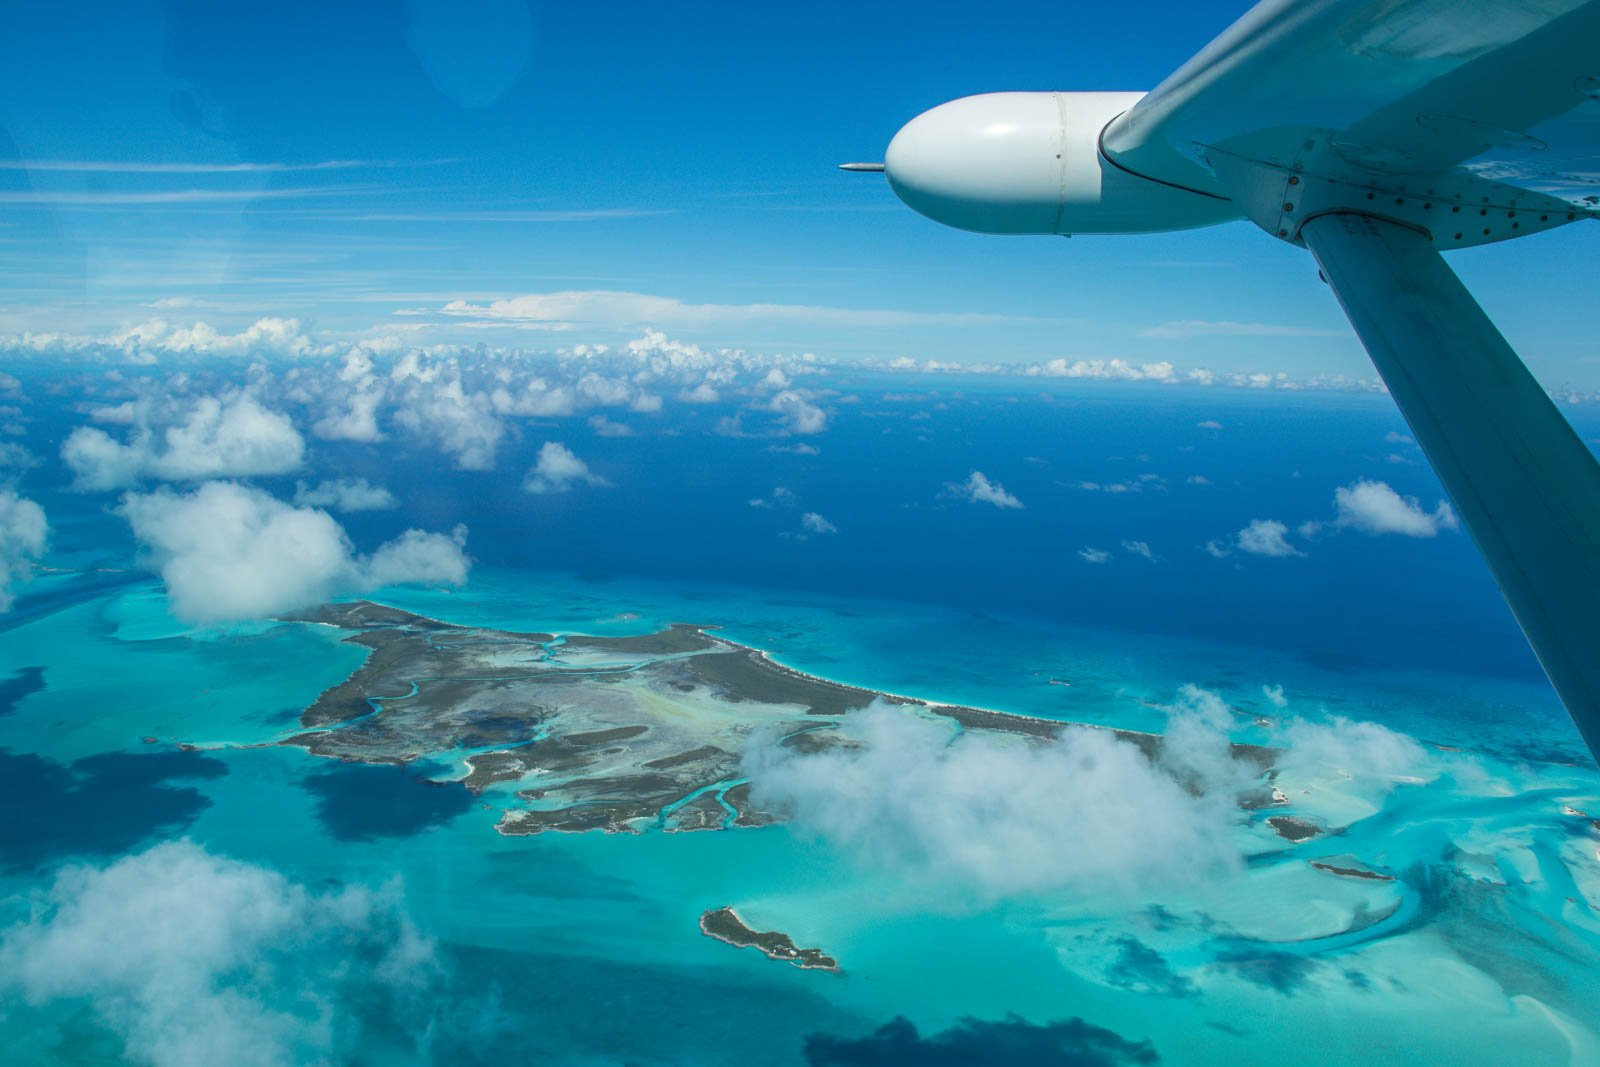 The view aboard a Bahamas air charter is jaw-dropping. Take a Day trip to Bahamas from Miami for the views and luxury.